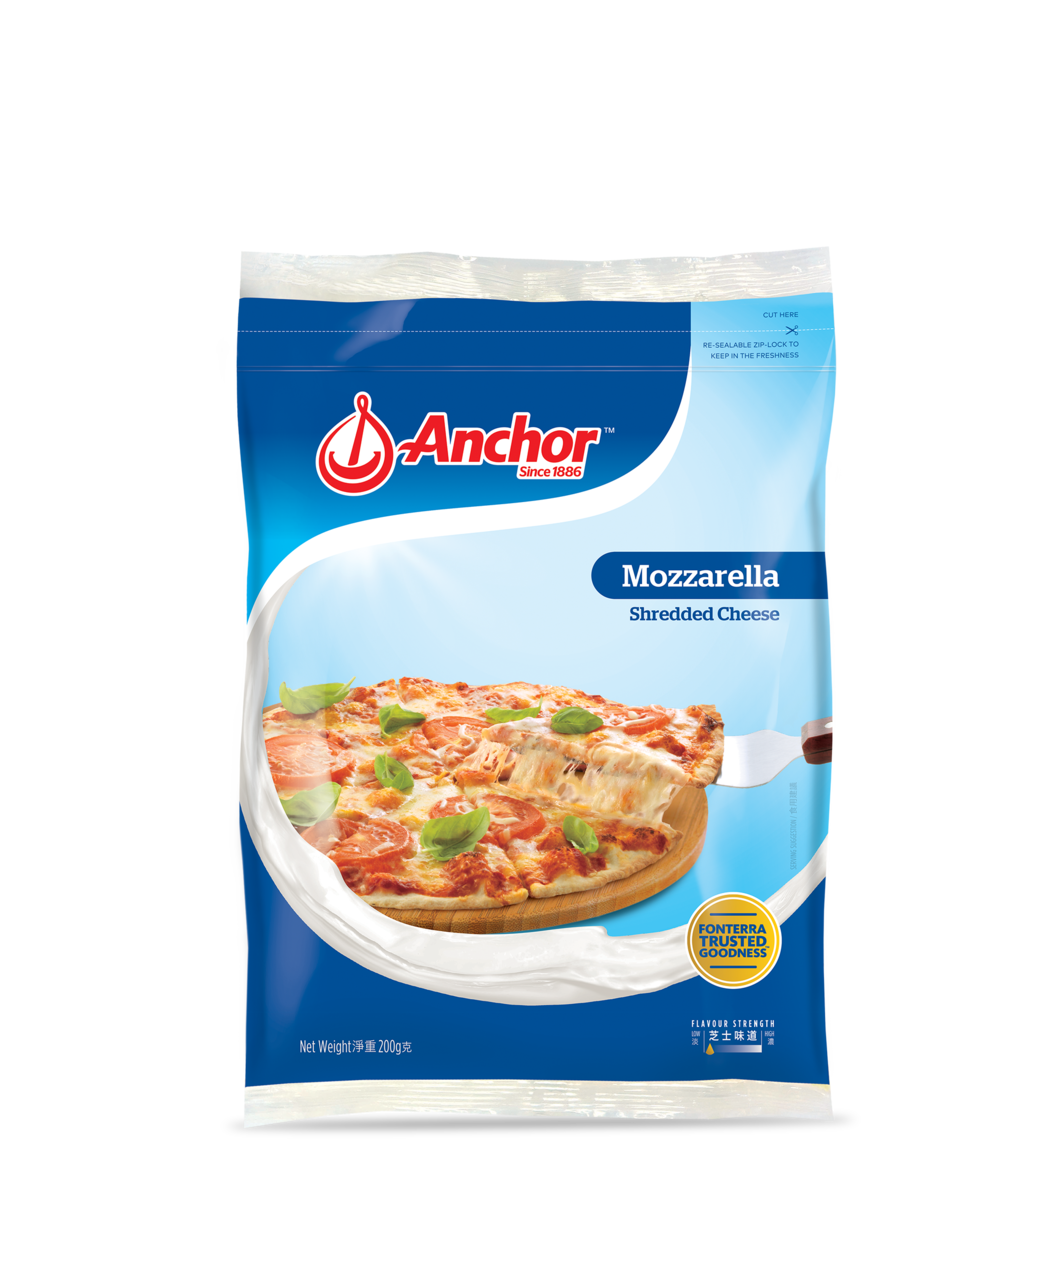 Anchor Mozzarella Shredded Cheese 200g Cheezy Mozarella